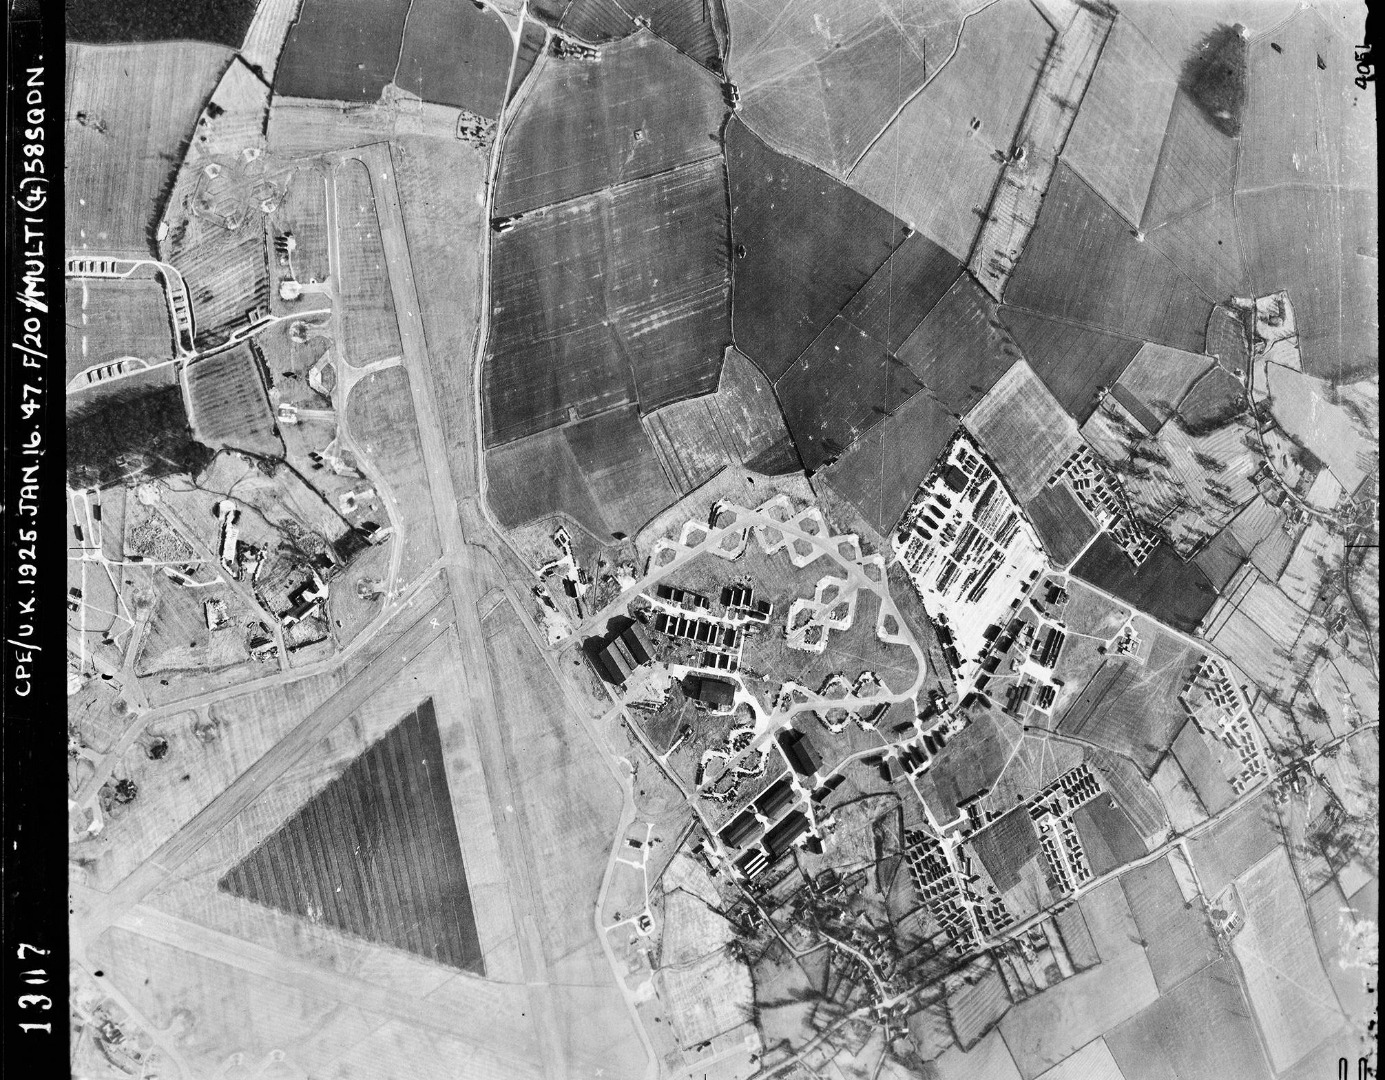 Alconbury_Airfield_-_1947.jpg